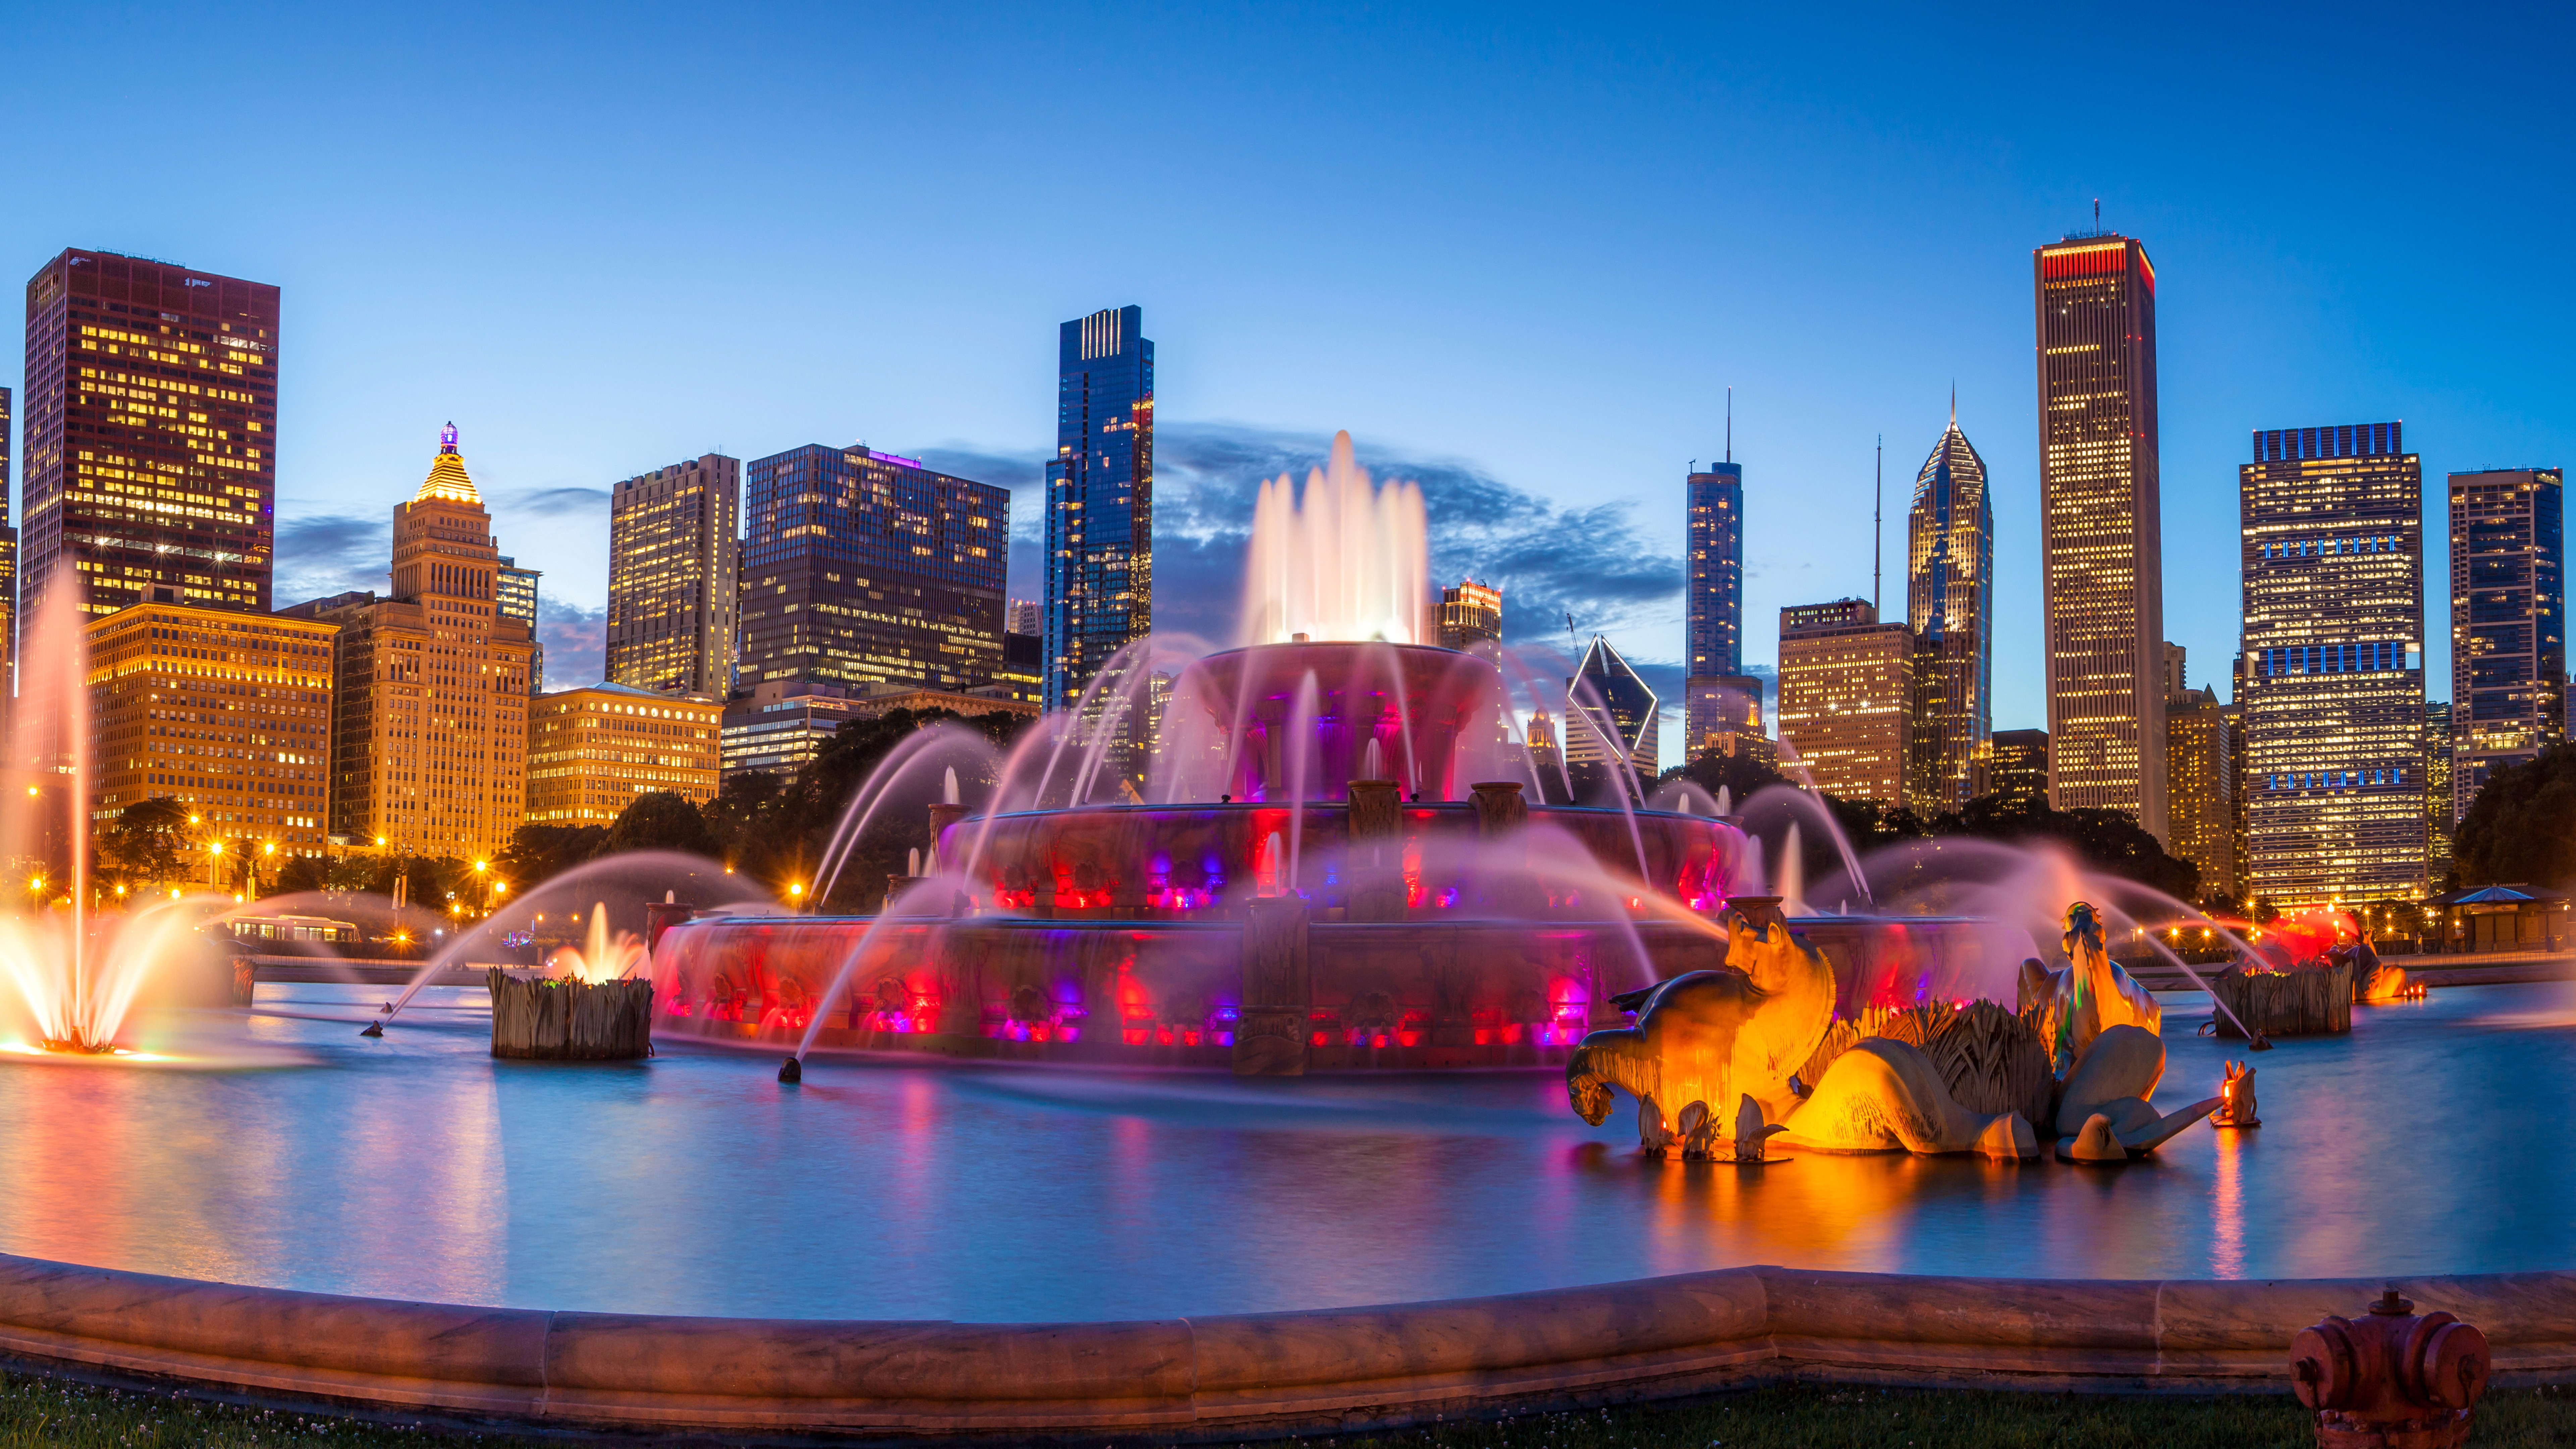 7680x4320 chicago city waterfall 8k 8k hd 4k wallpapers images chicago city waterfall 8k x1g voltagebd Image collections